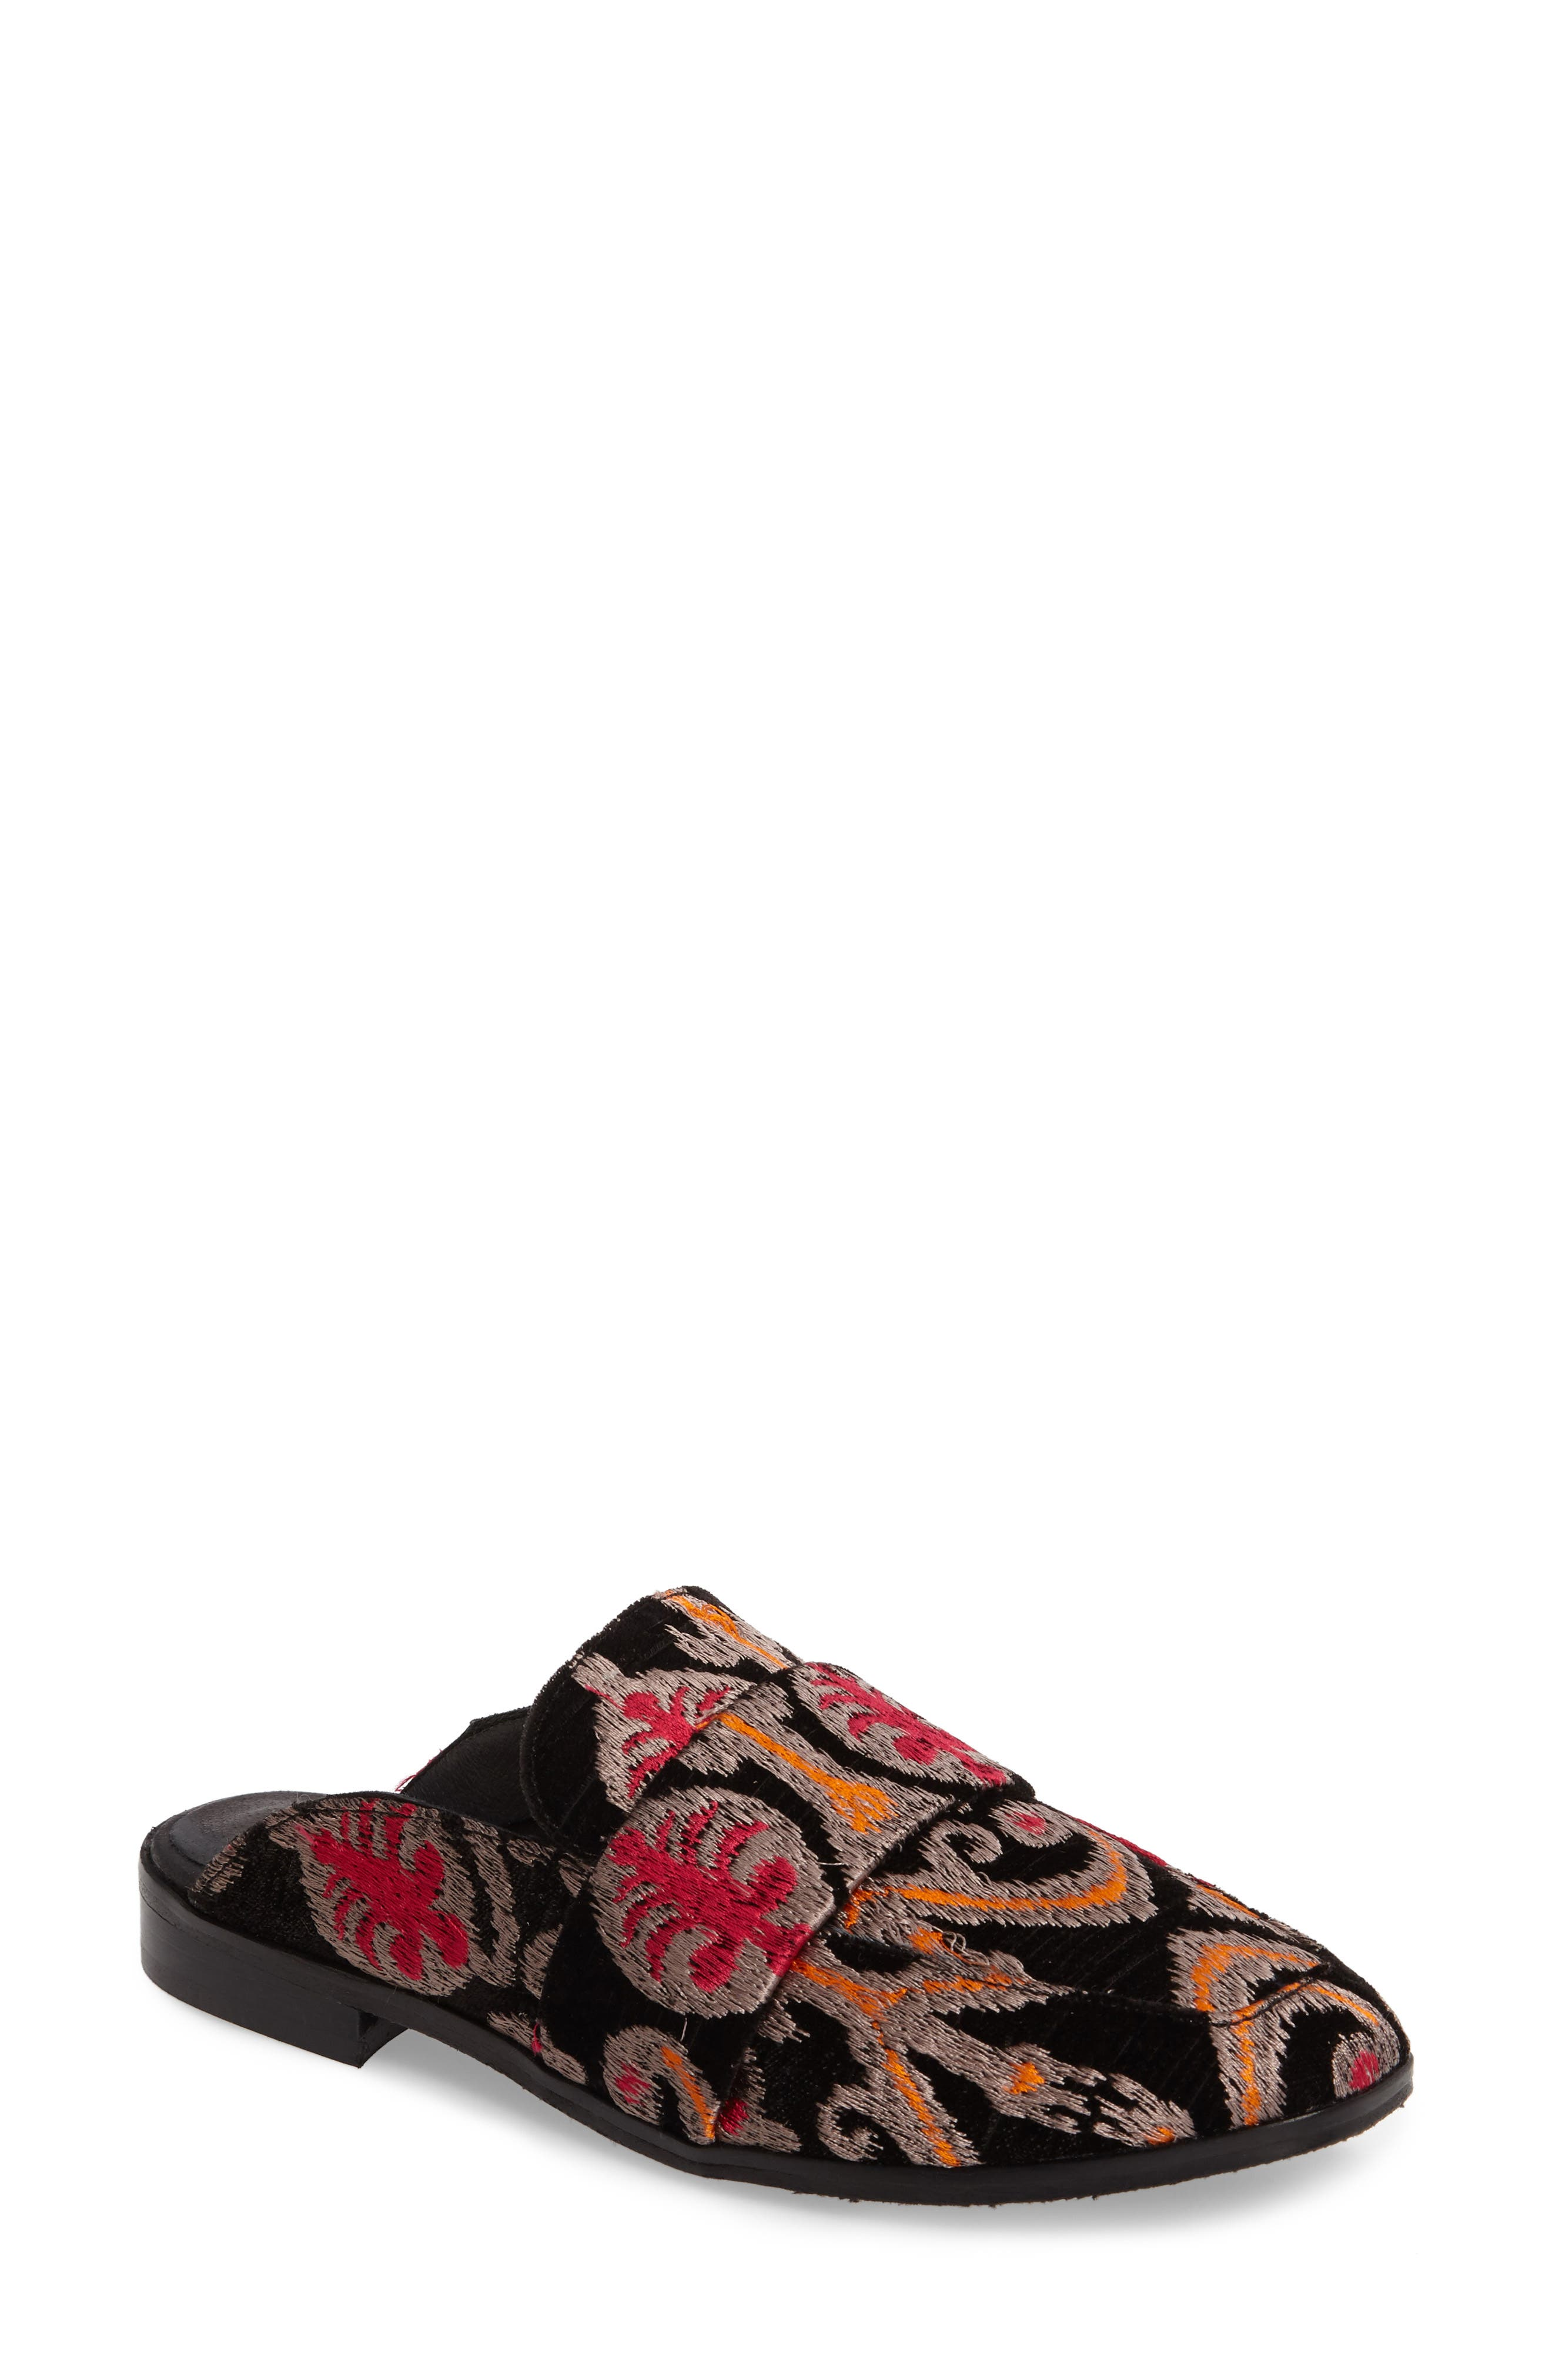 At Ease Loafer,                             Main thumbnail 1, color,                             Black Combo Fabric